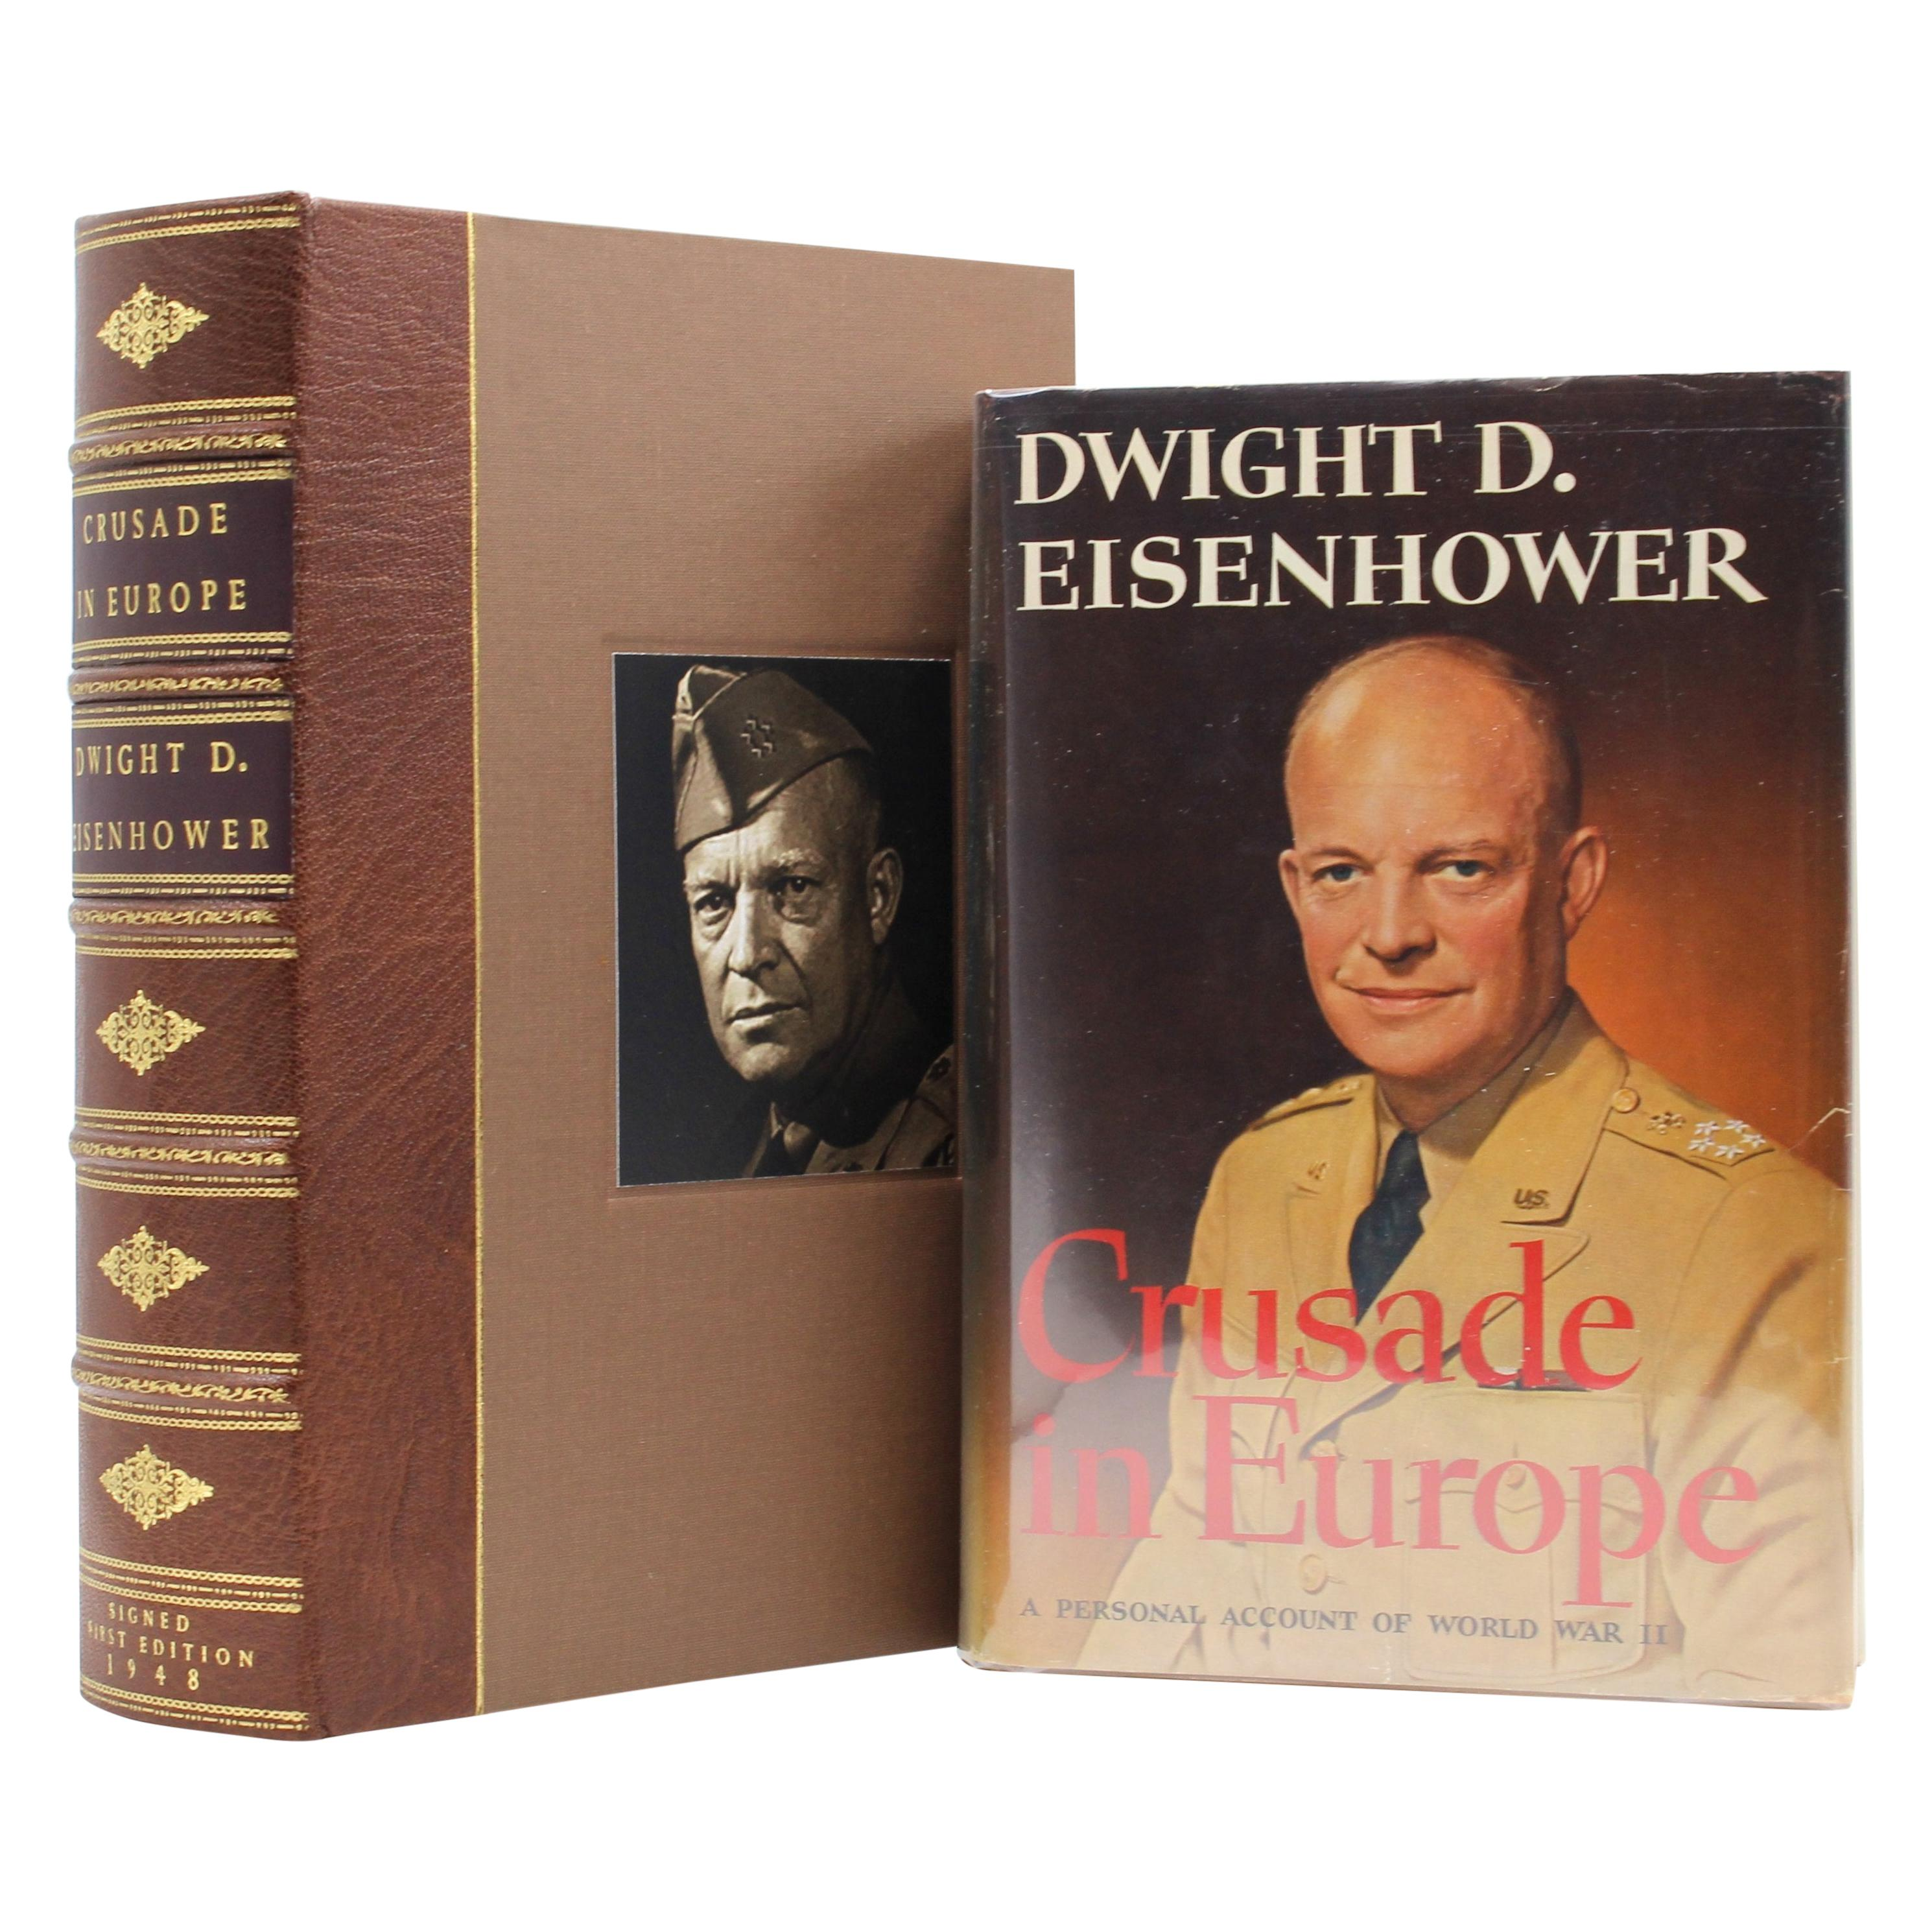 Crusade in Europe, Signed and Inscribed by Dwight D. Eisenhower, First Edition